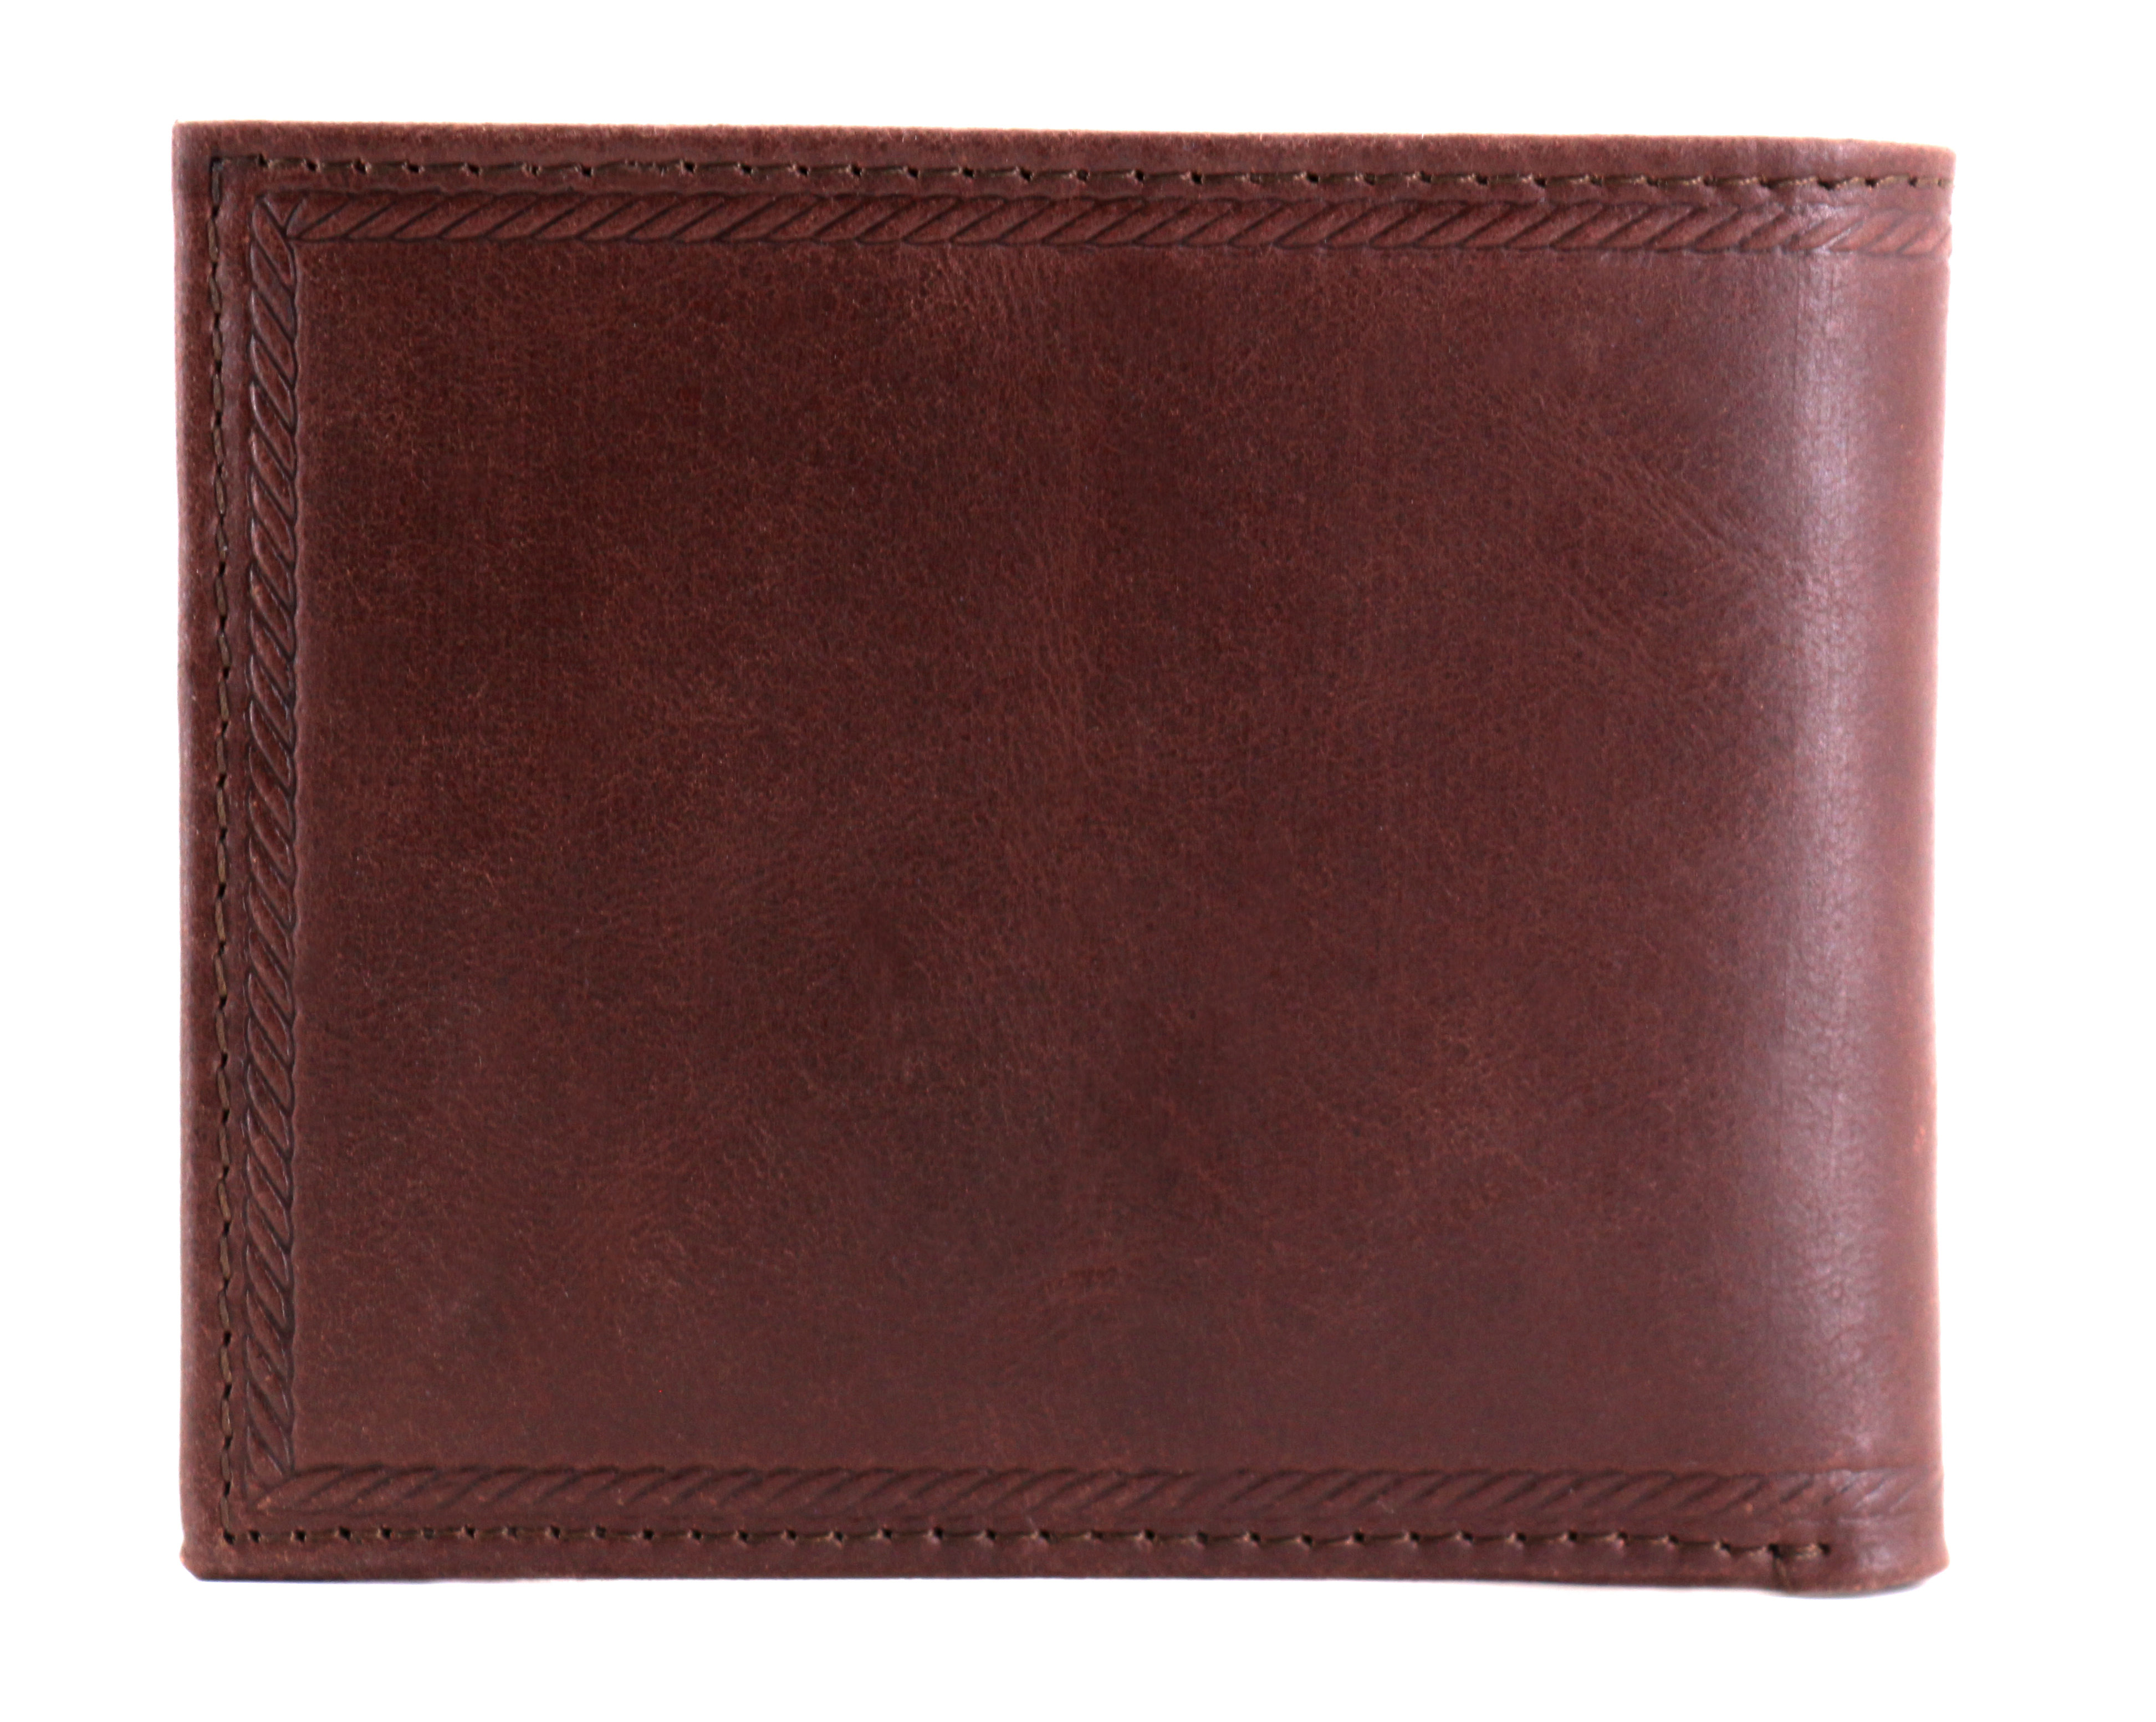 Nautica-Men-039-s-Genuine-Vintage-Leather-Credit-Card-ID-Billfold-Passcase-Wallet thumbnail 11